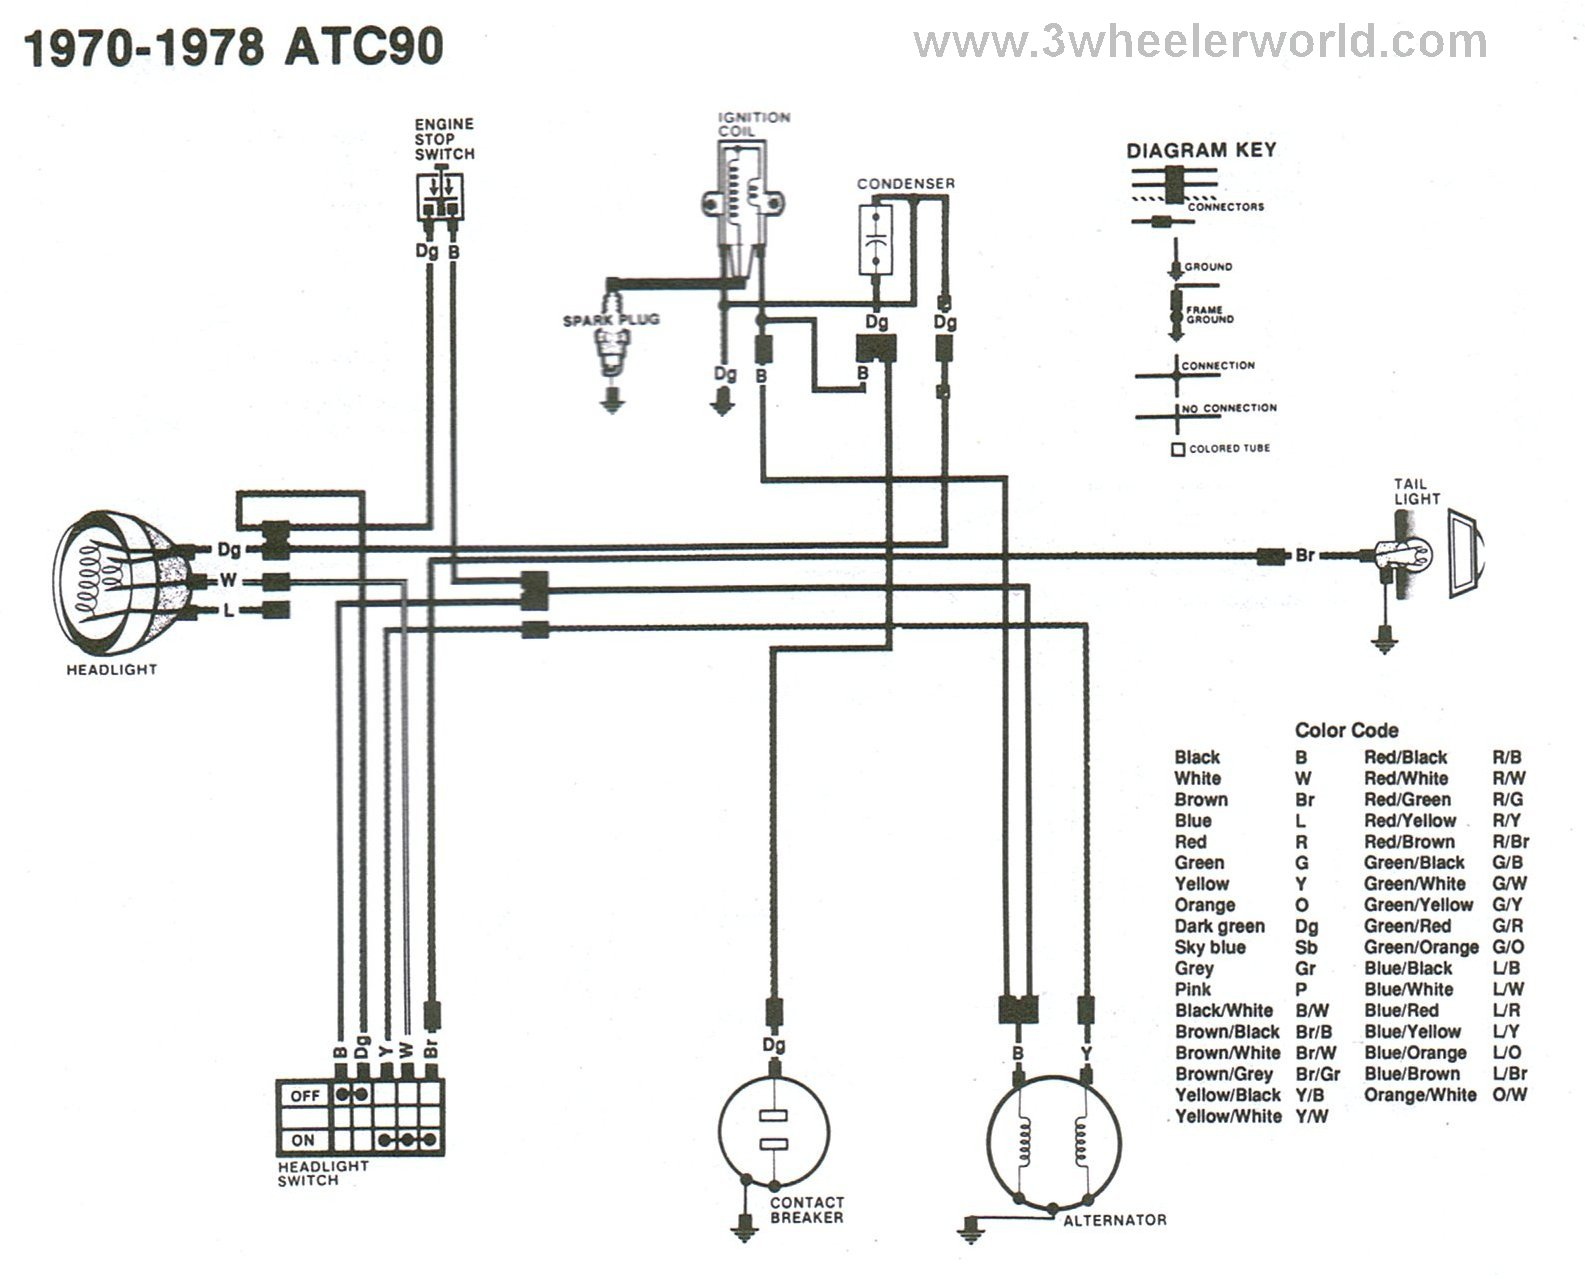 ATC90x70Thru78 3 wheeler world tech help honda wiring diagrams 1980 honda atc 110 wiring diagram at creativeand.co